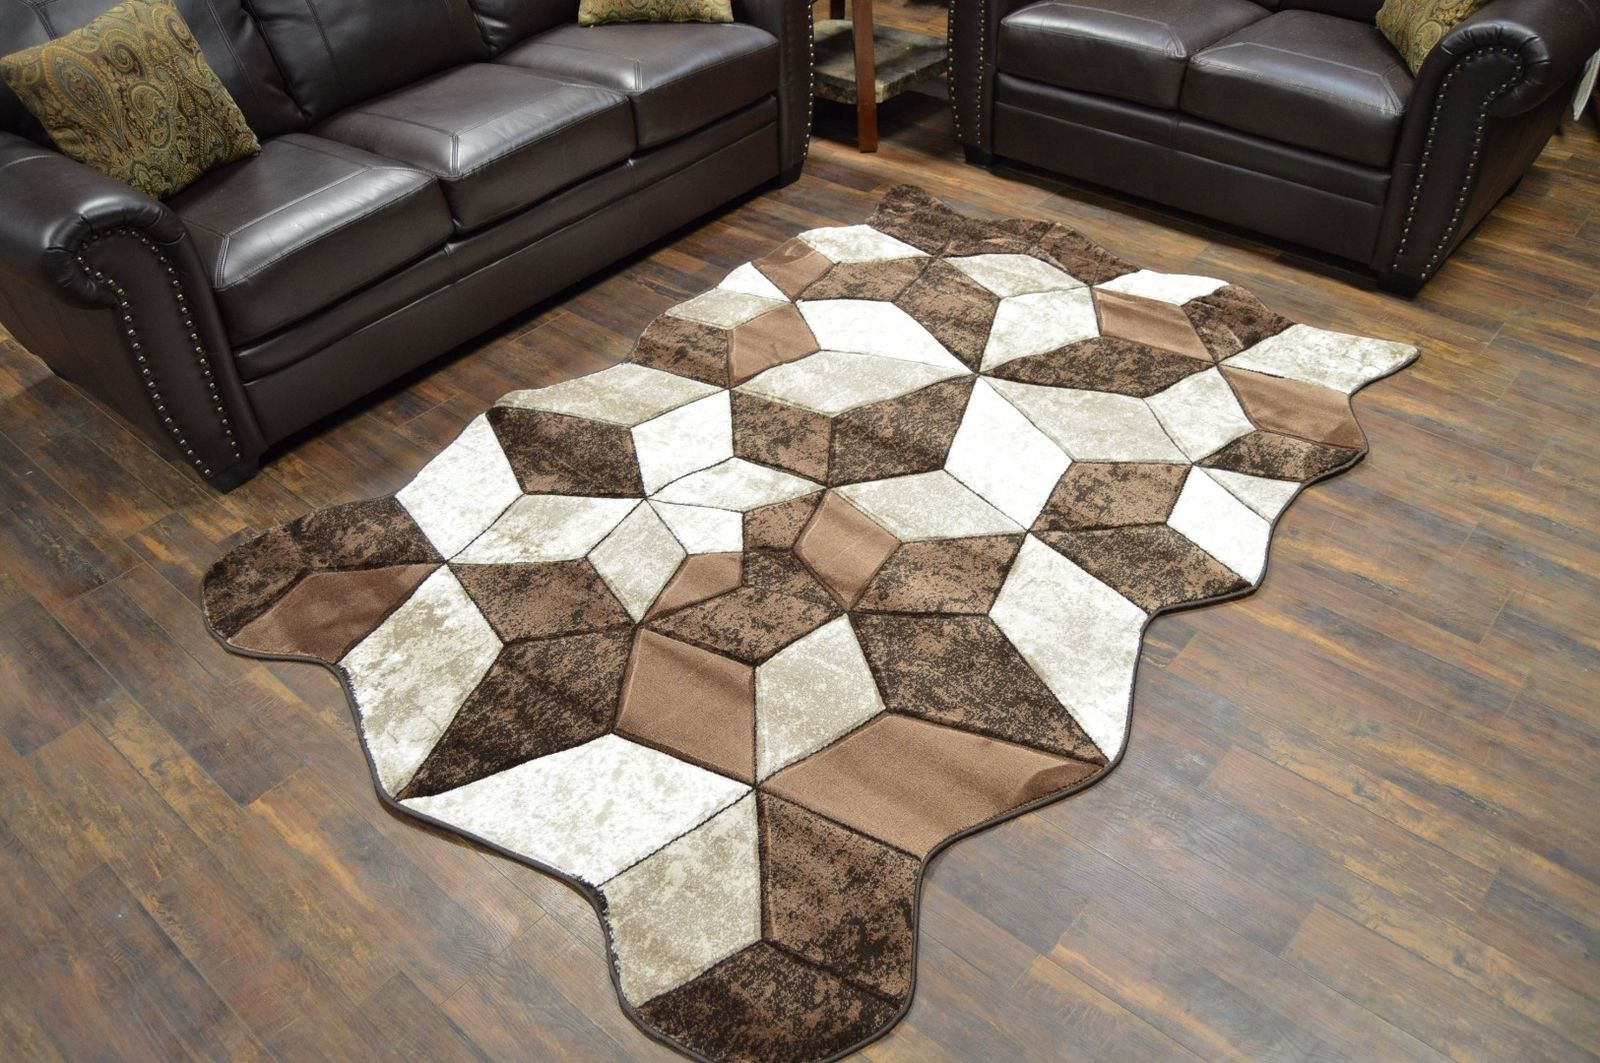 TWIST Free Shape 3D Hand Carved Modern Contemporary 5x8 Rug 4708 Brown - $139.00